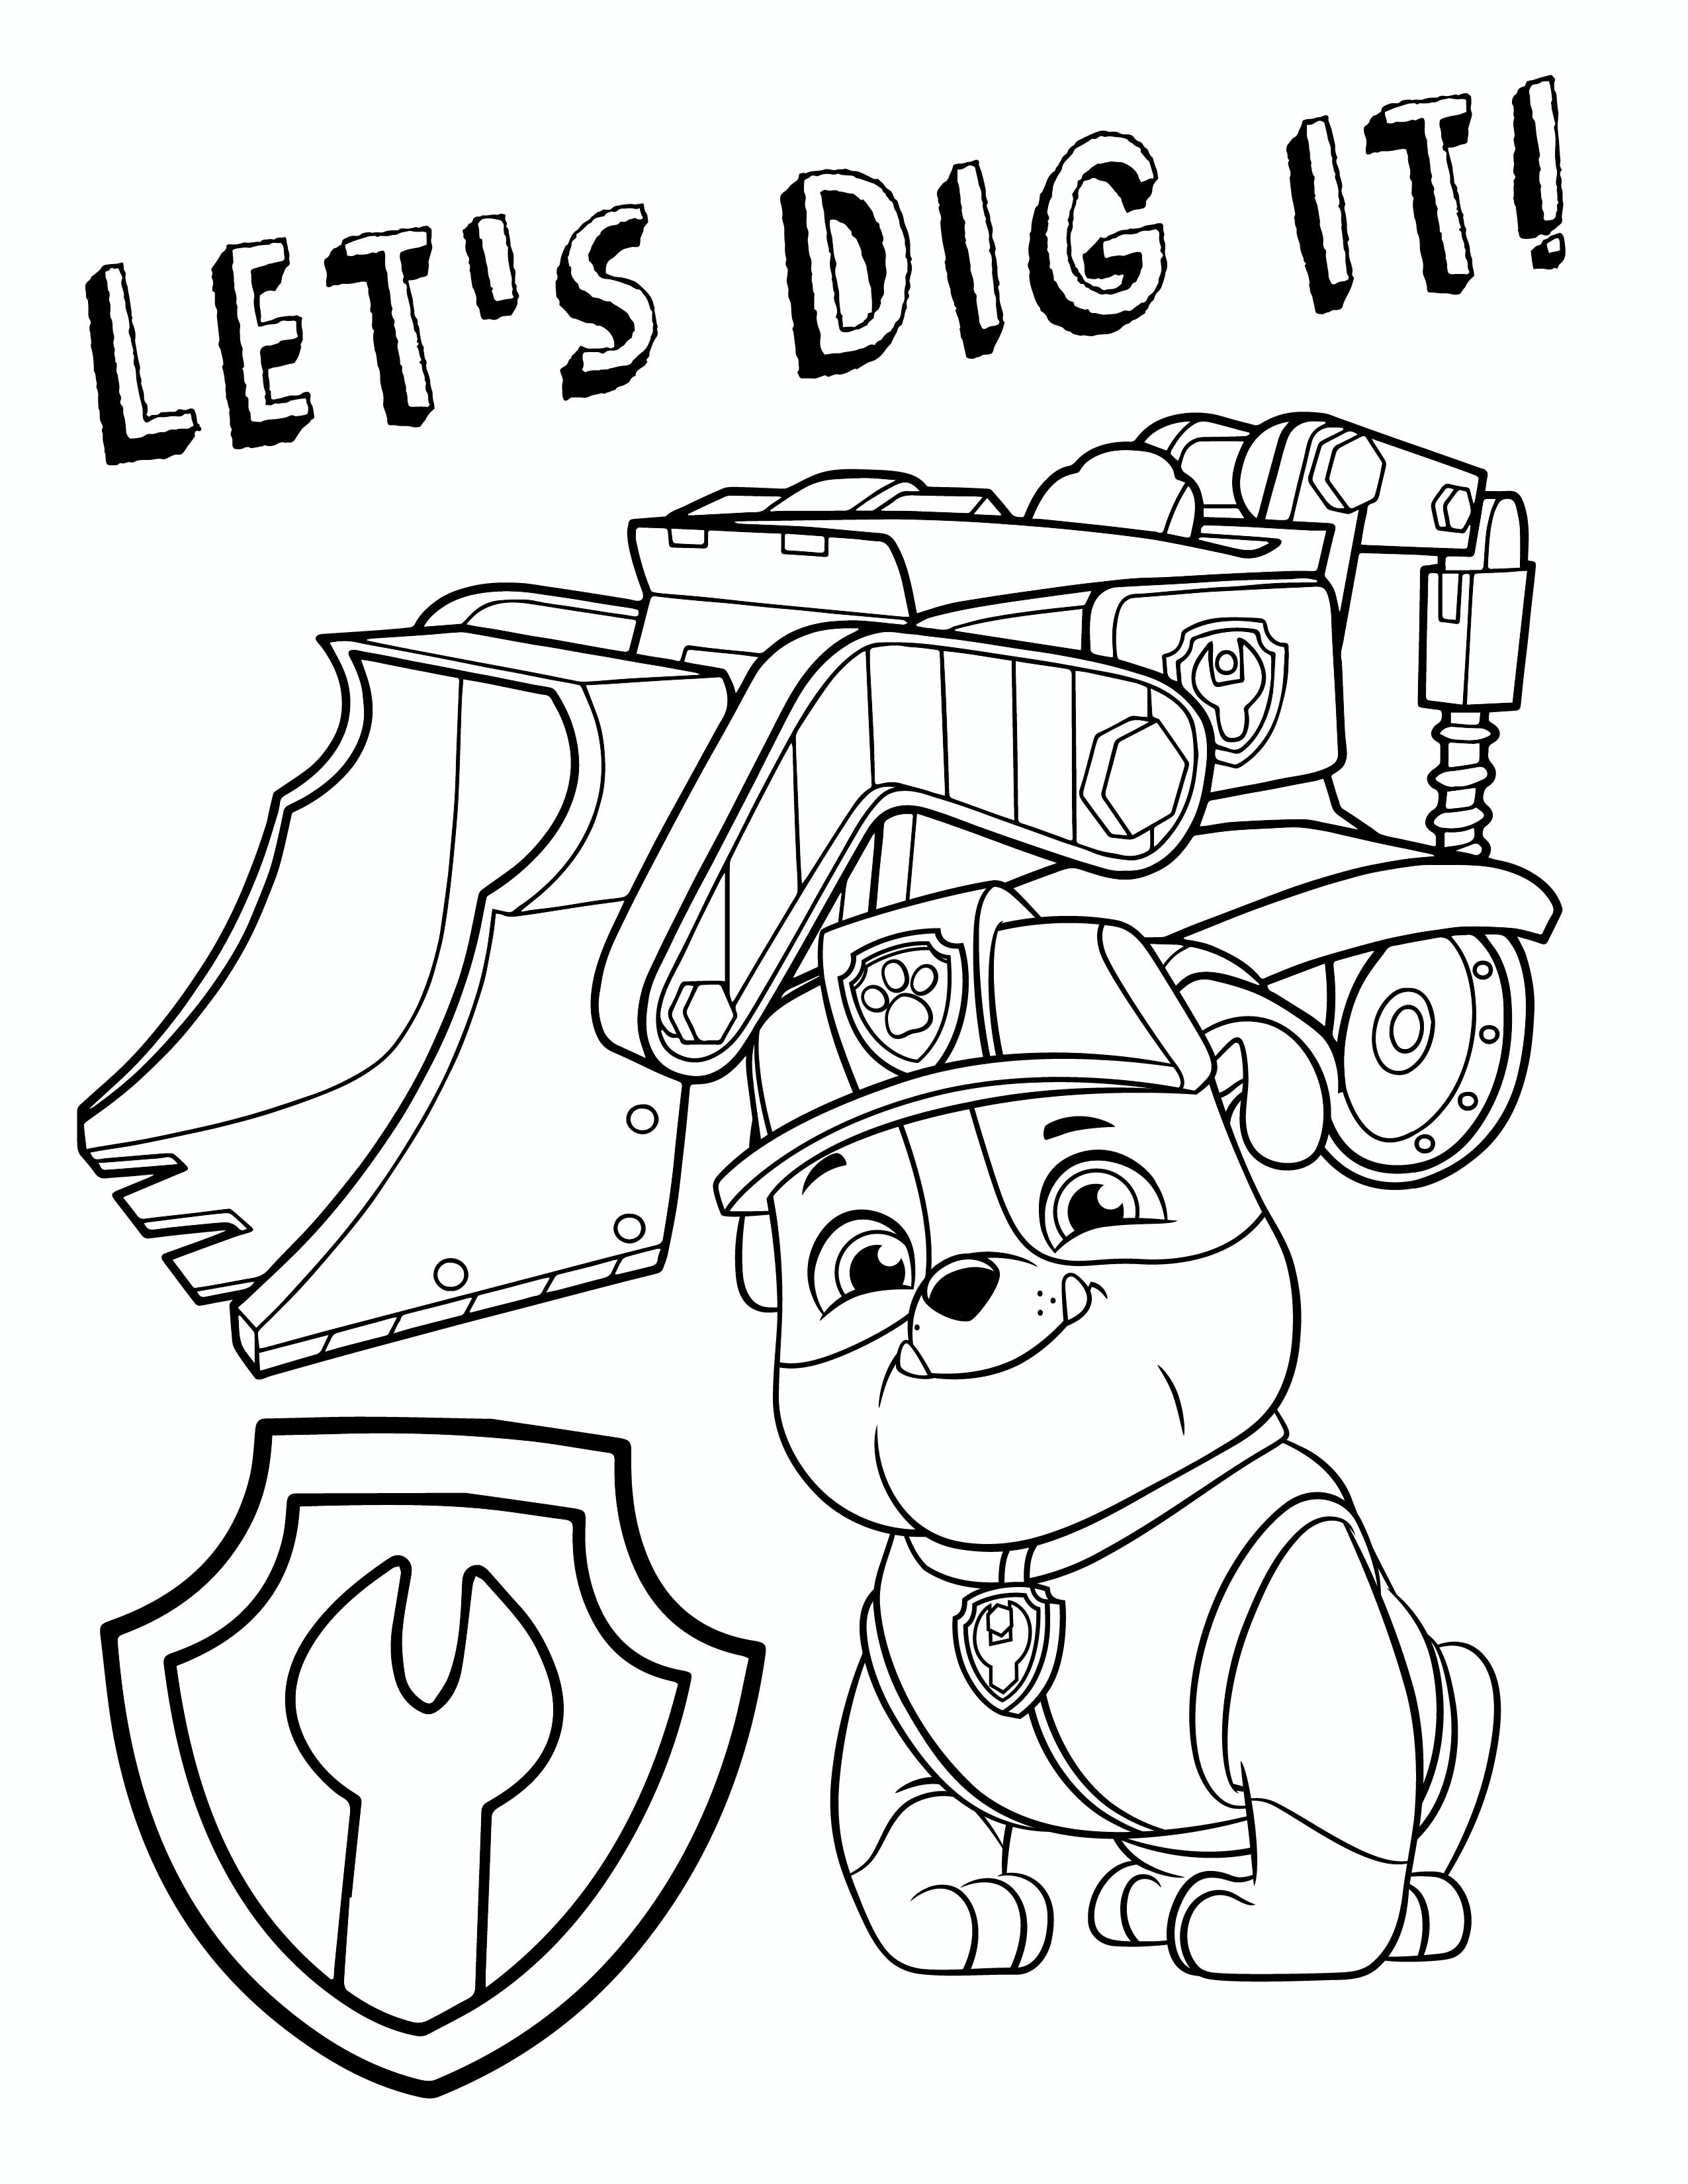 Free PAW Patrol Rubble Coloring Pages